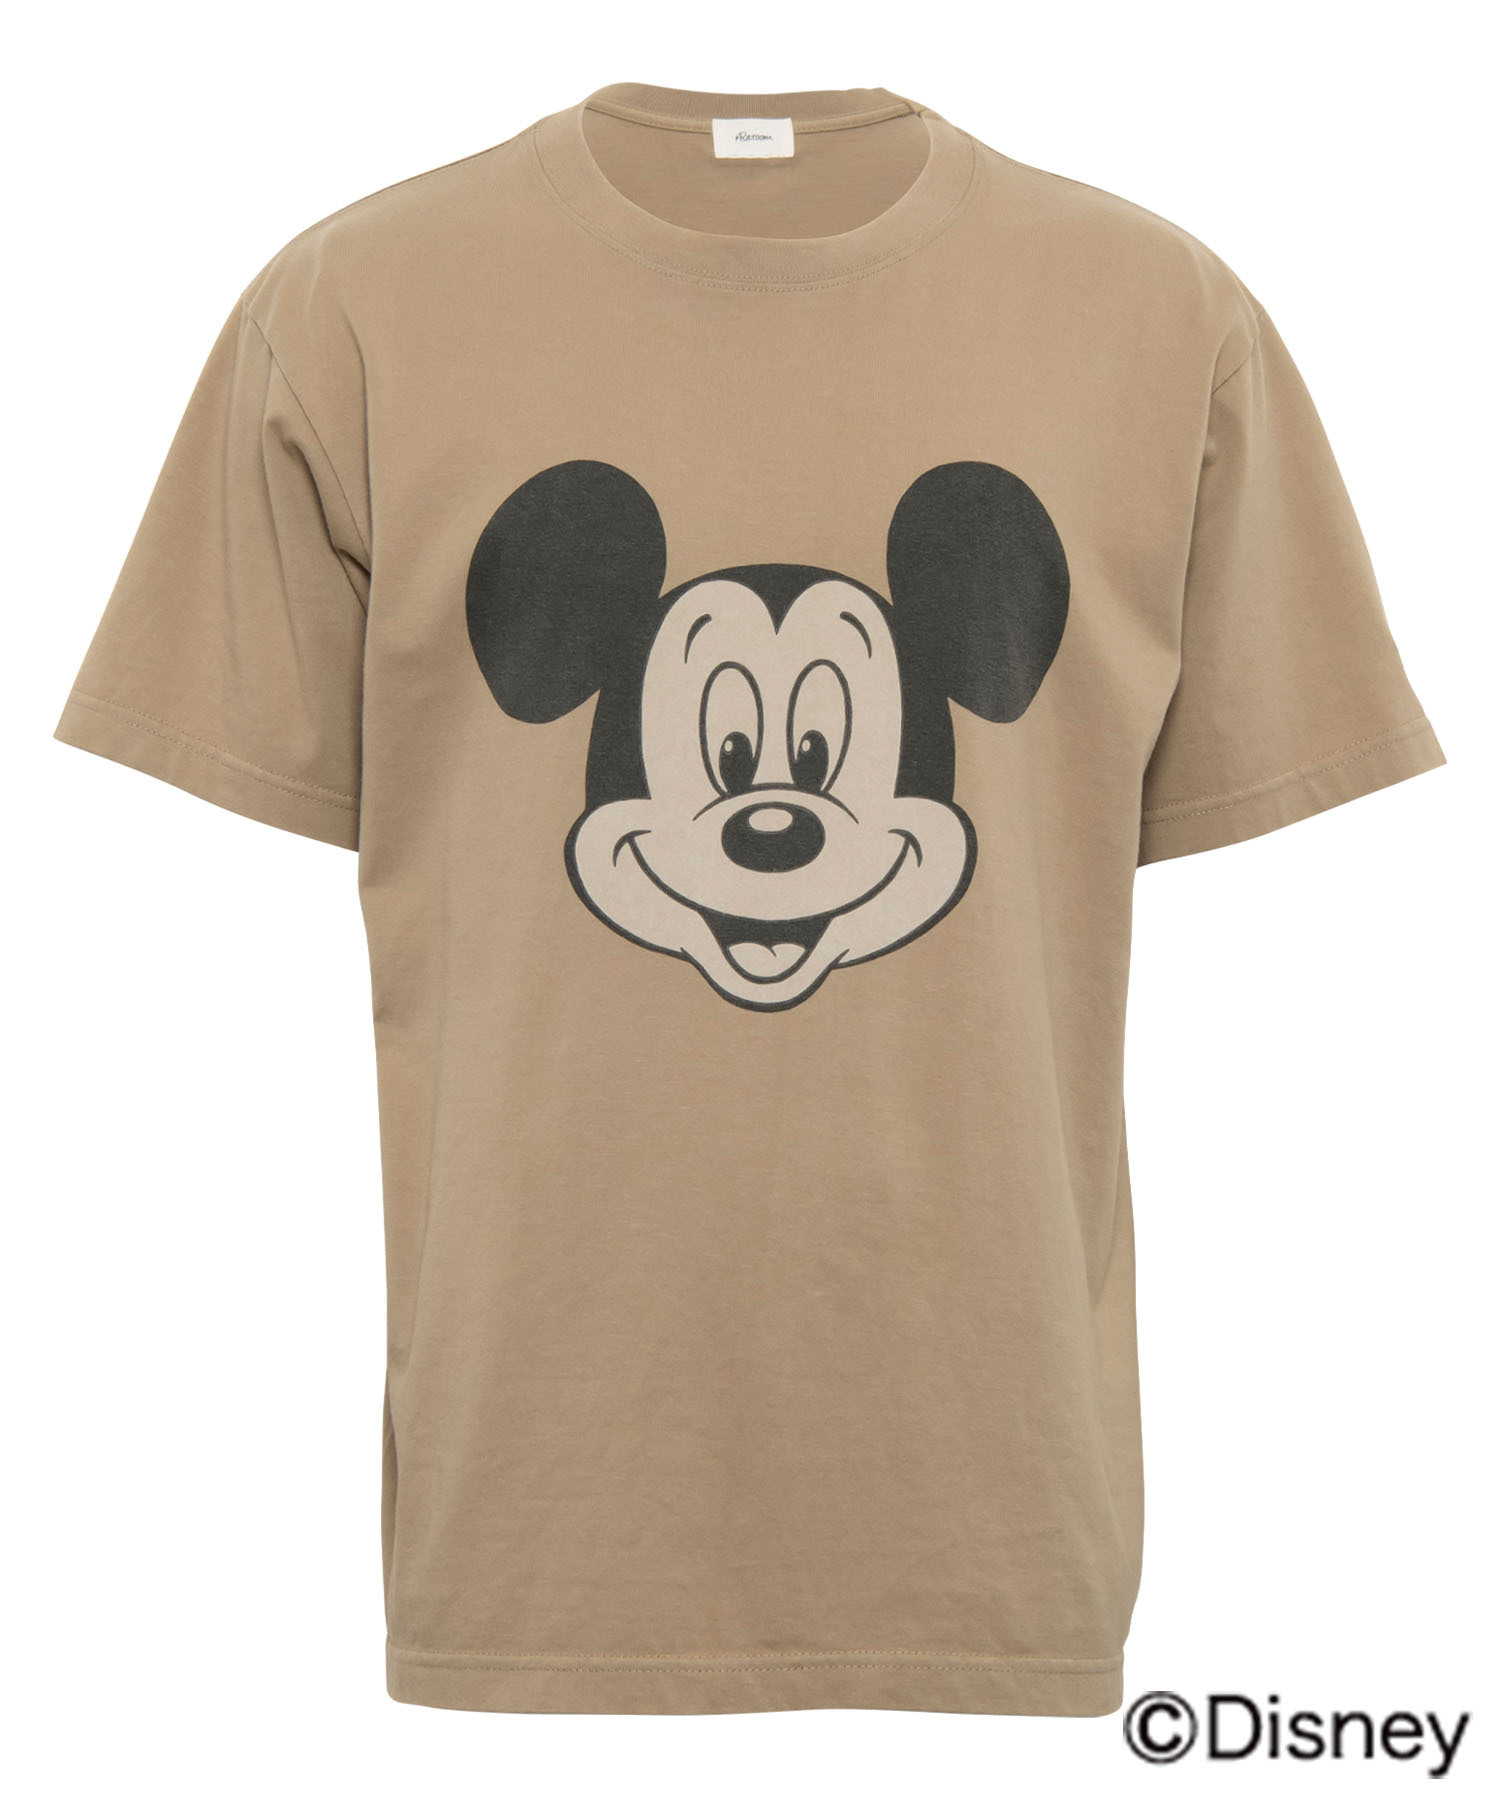 VINTAGE BIG FACE PRINT T-shirt - MICKEY MOUSE[REC409]